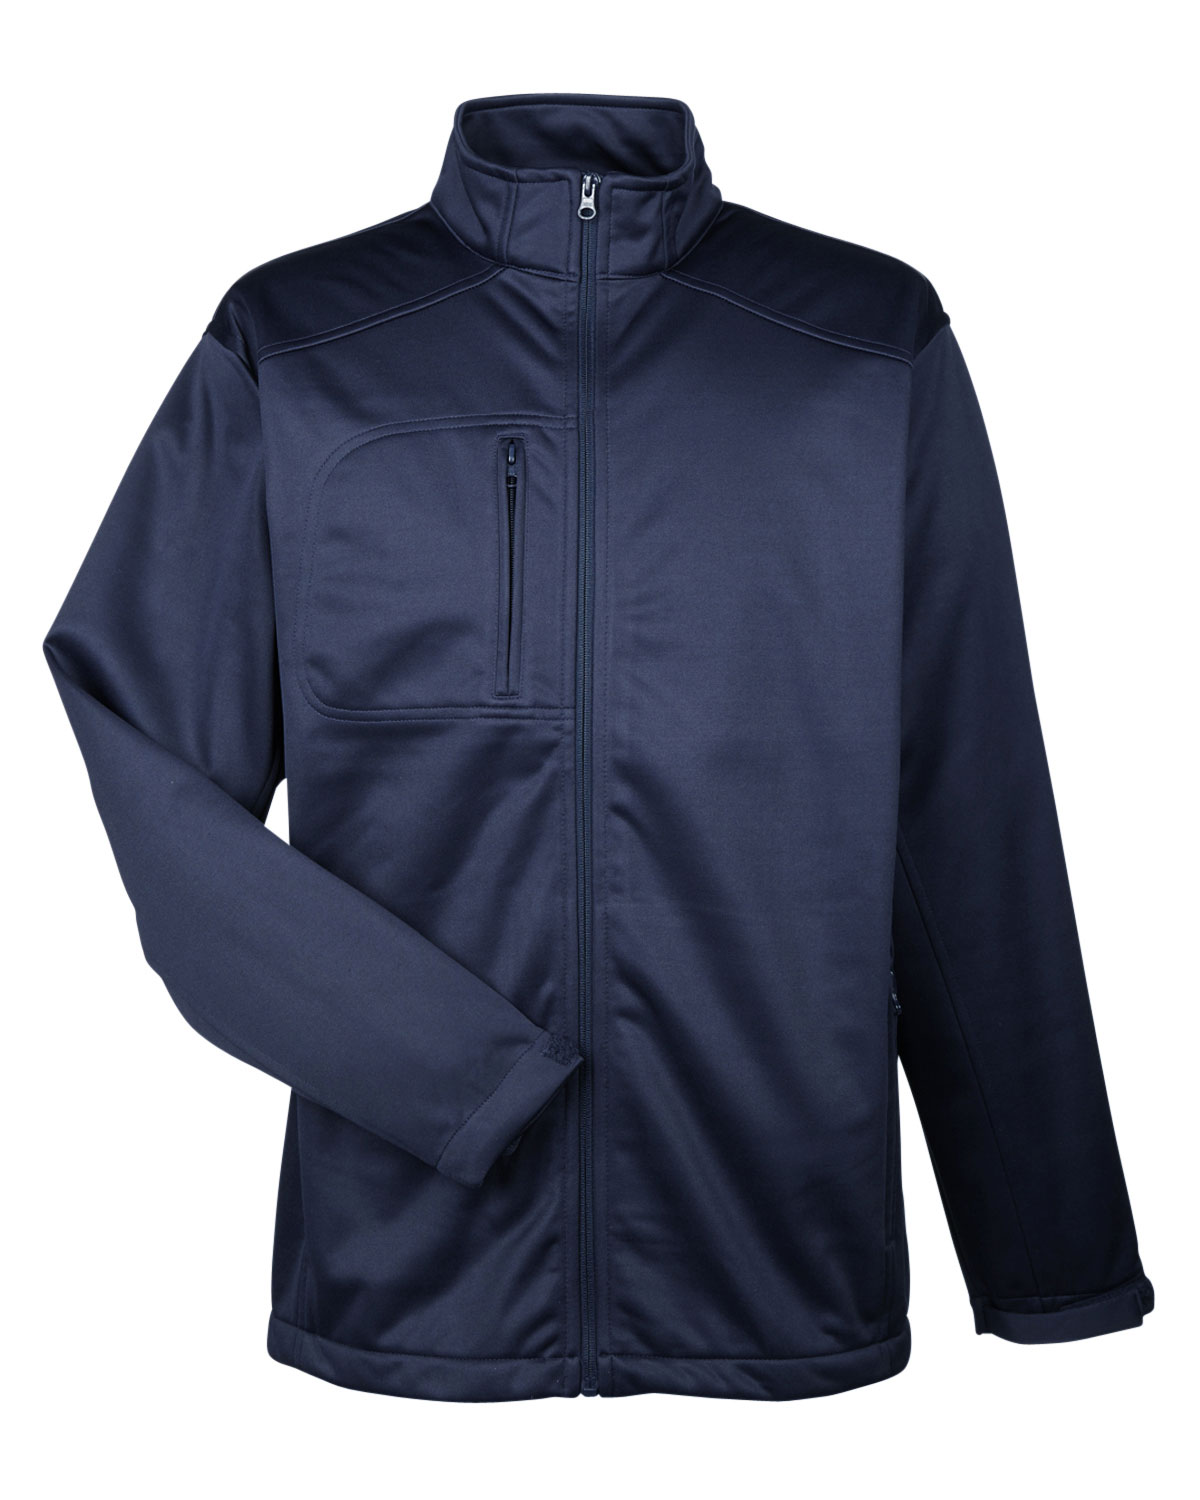 UltraClub Mens Water Resistant Soft Shell Jacket